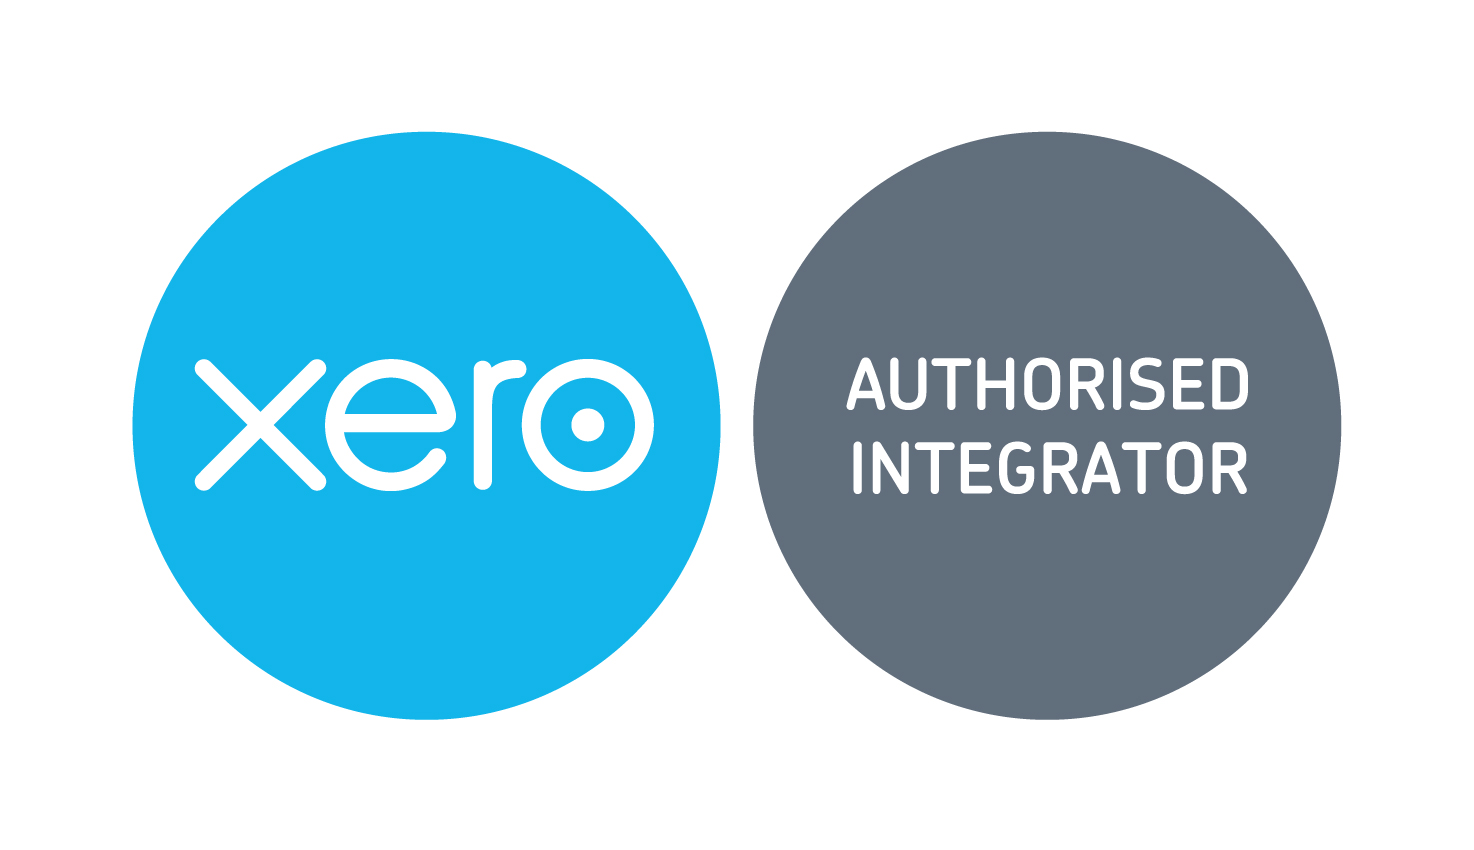 Xero Authorised Integrator in Canberra